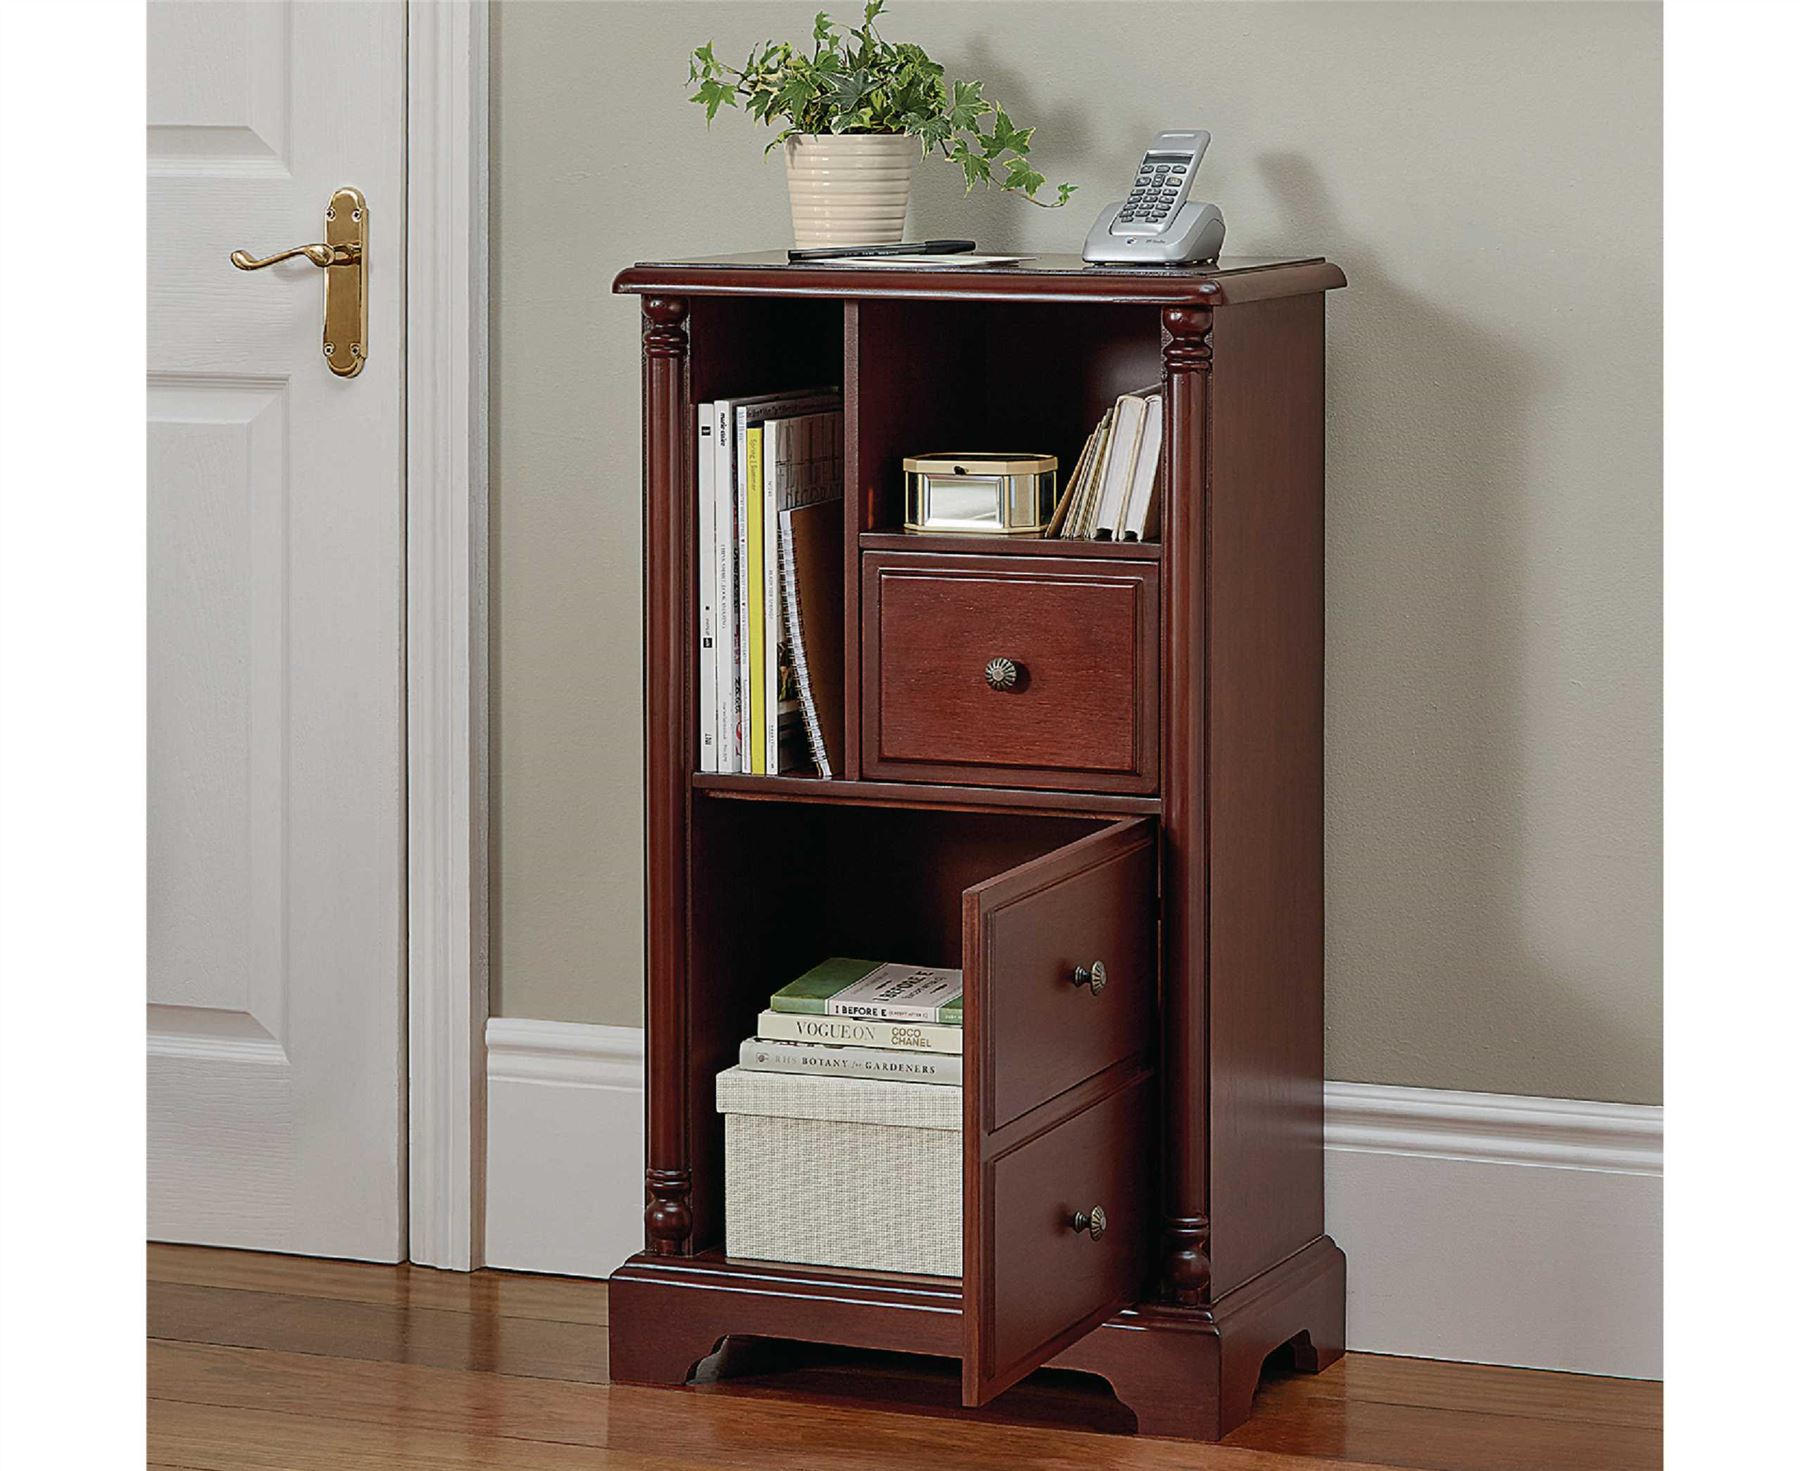 exciting hall cabinets furniture | Telephone Table Cabinet Stand Living Room Hall Furniture ...